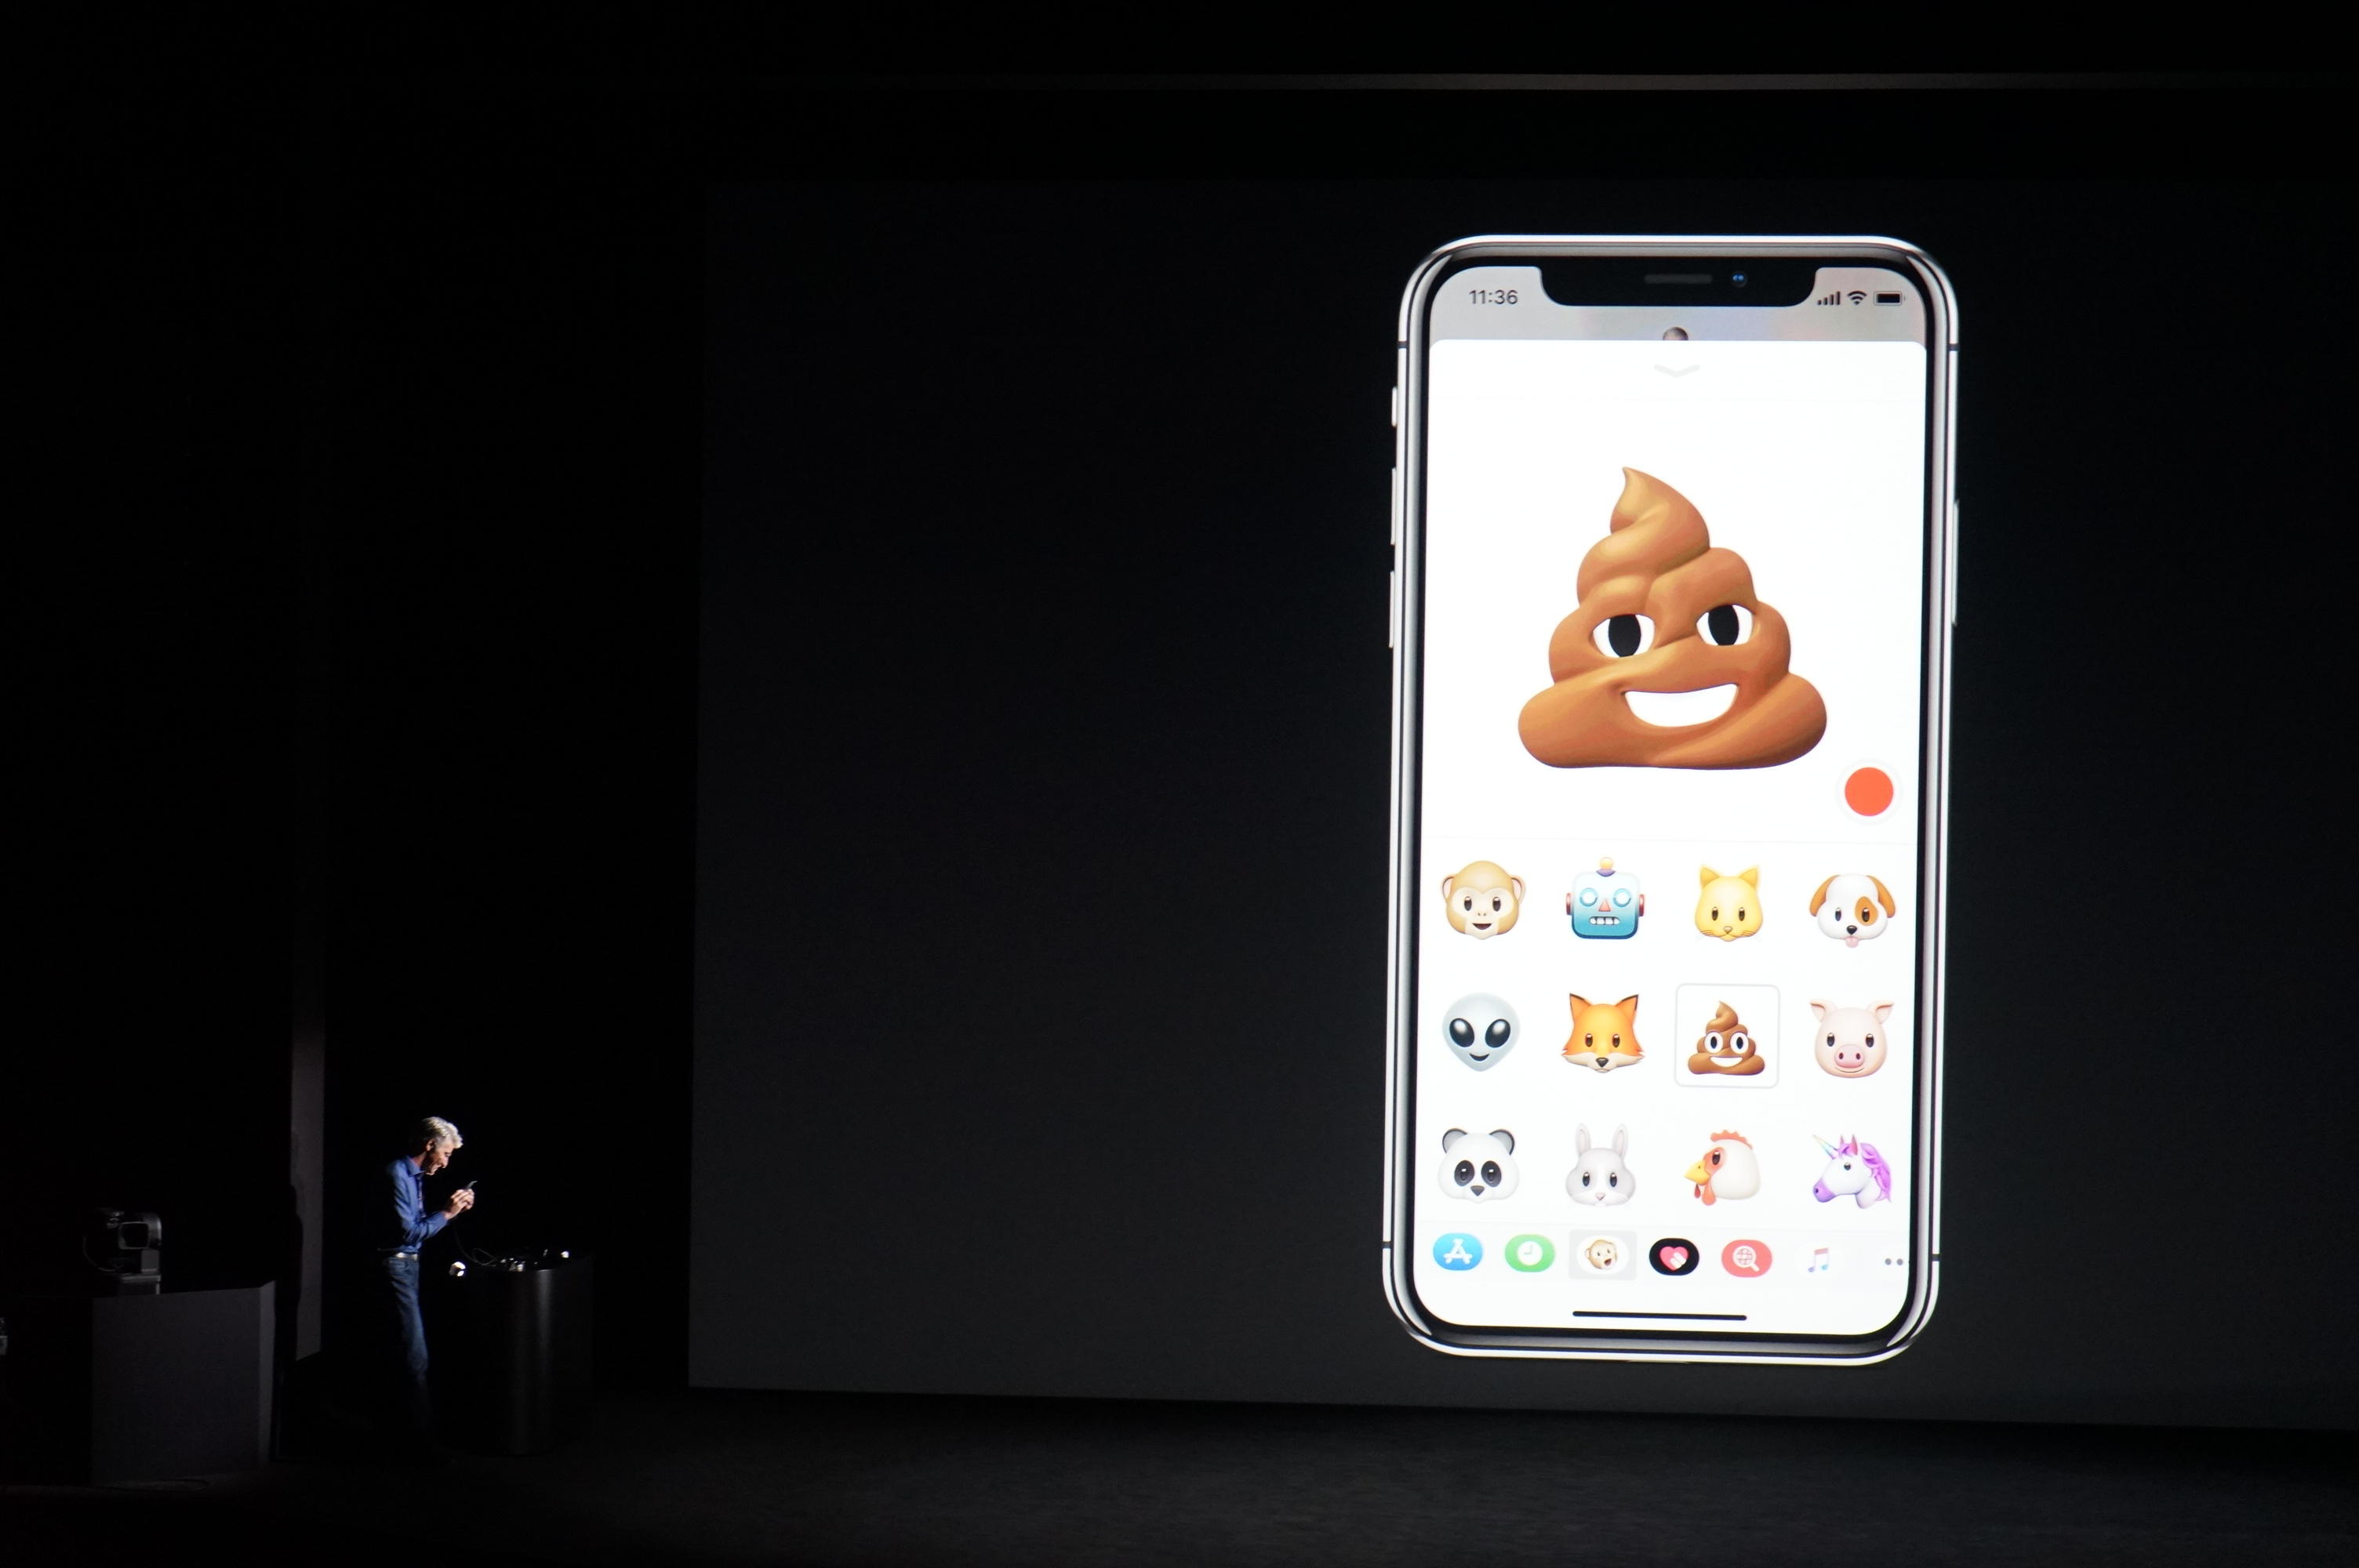 September 2017 - The iPhone X changes things up